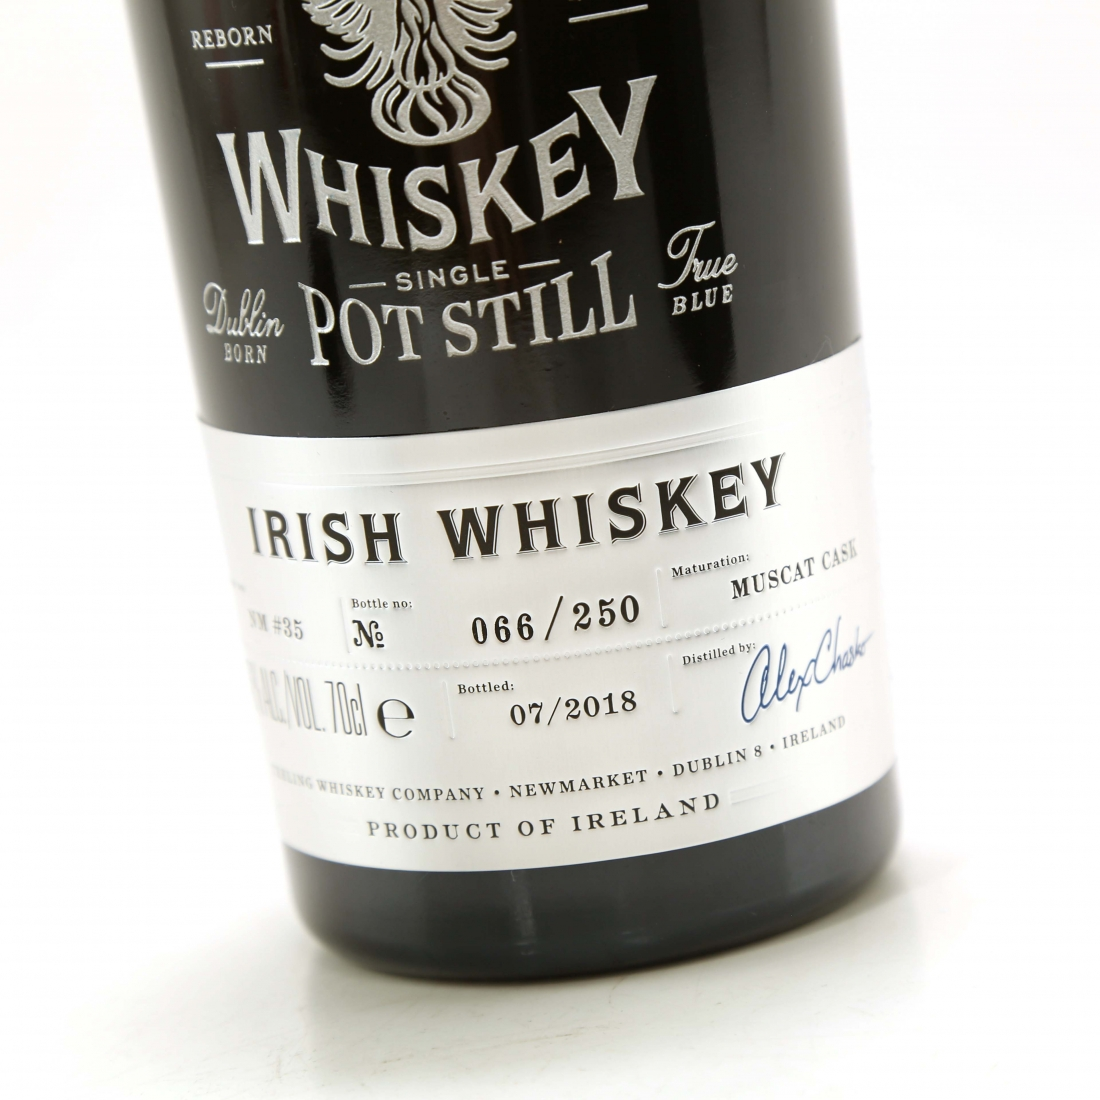 Teeling Celebratory Single Pot Still Whiskey / Bottle #066